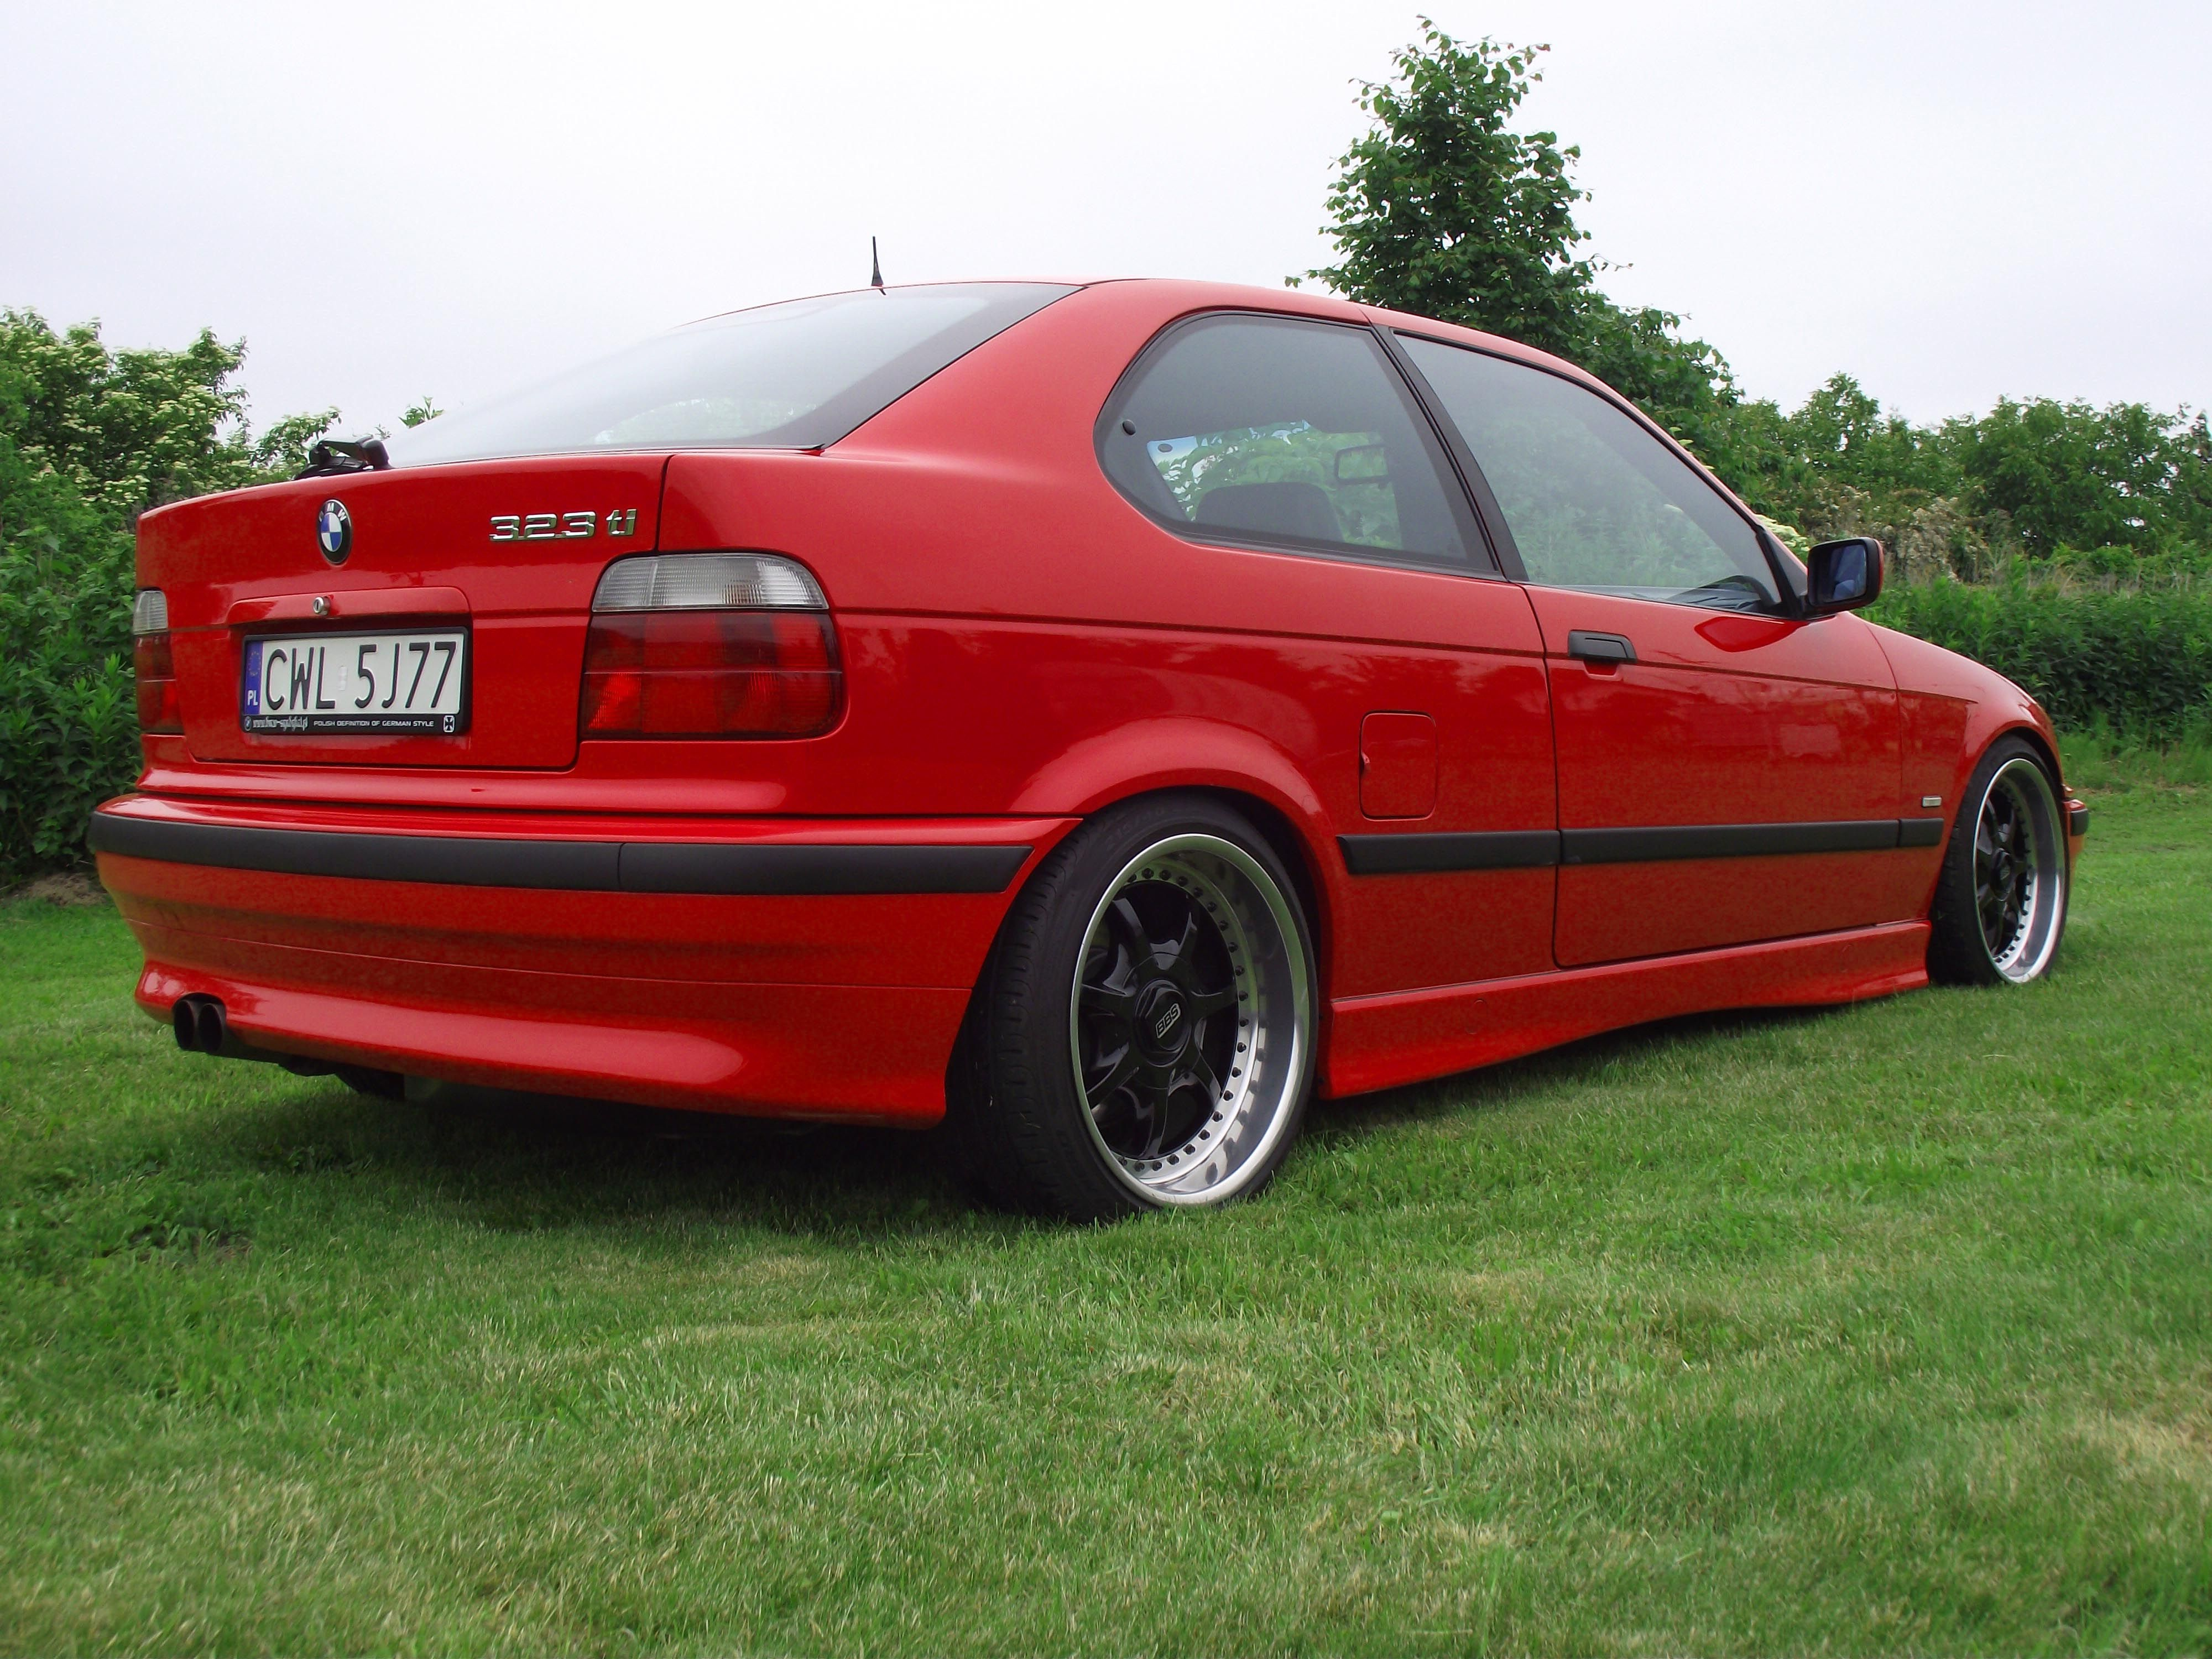 non m hellrot bmw e36 compact on oem bmw styling 19 wheels bmw e36 pinterest bmw wheels. Black Bedroom Furniture Sets. Home Design Ideas